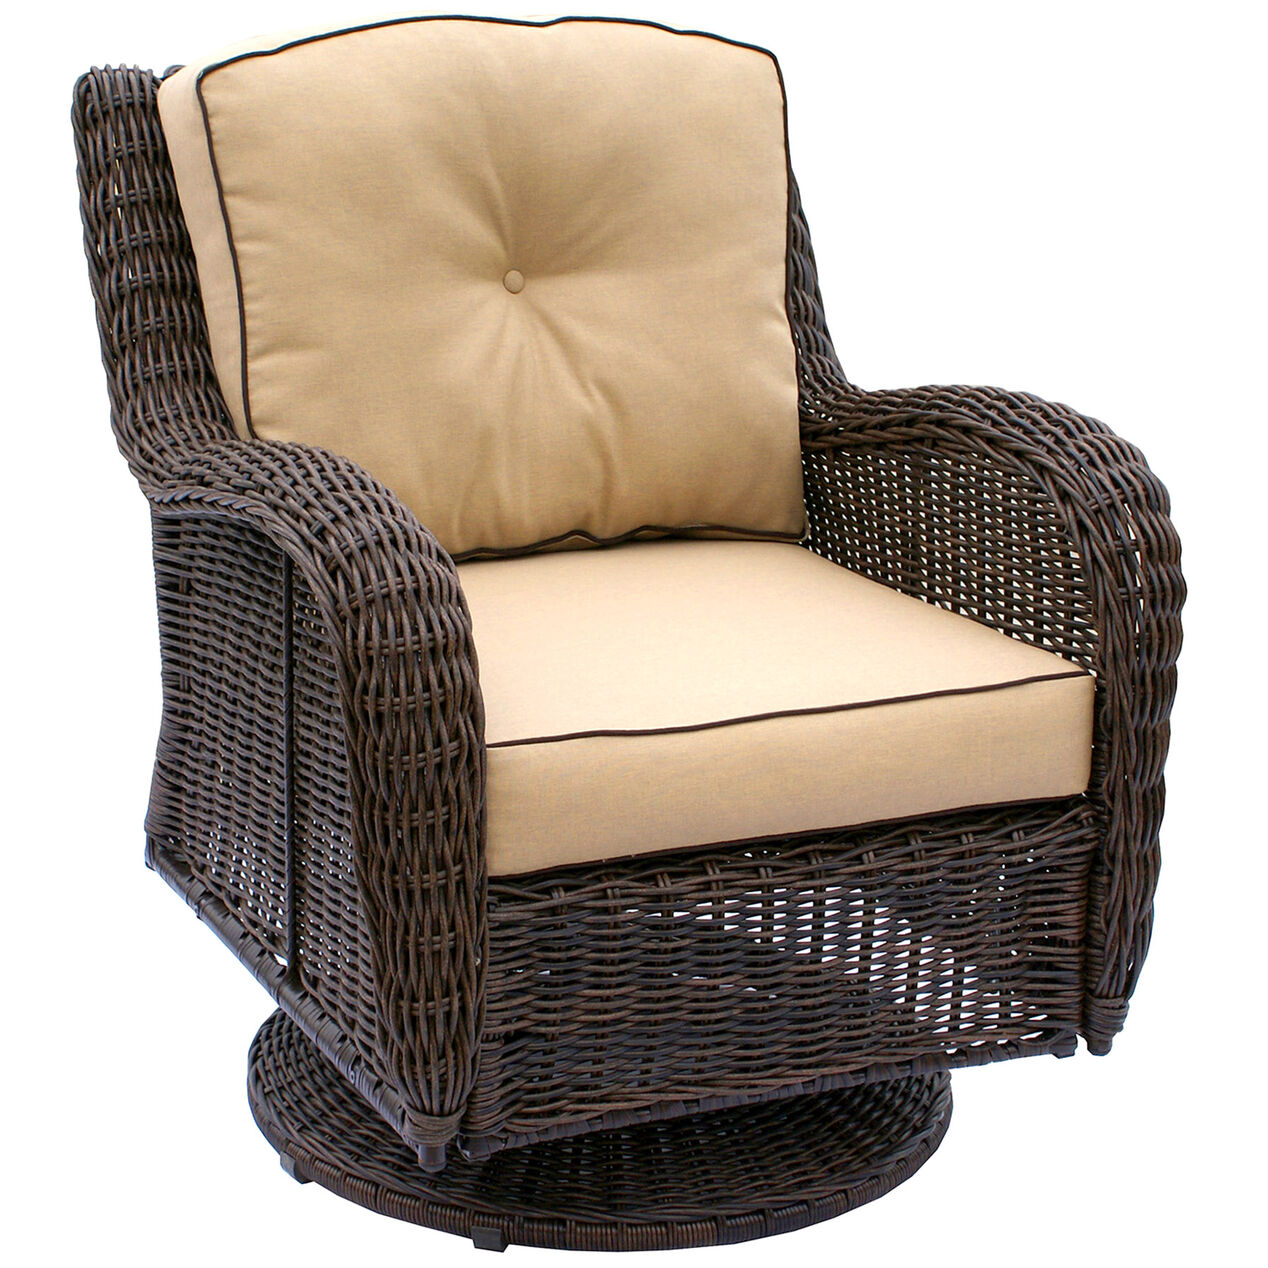 Brown Grand Isle Wicker Swivel Chair At Home